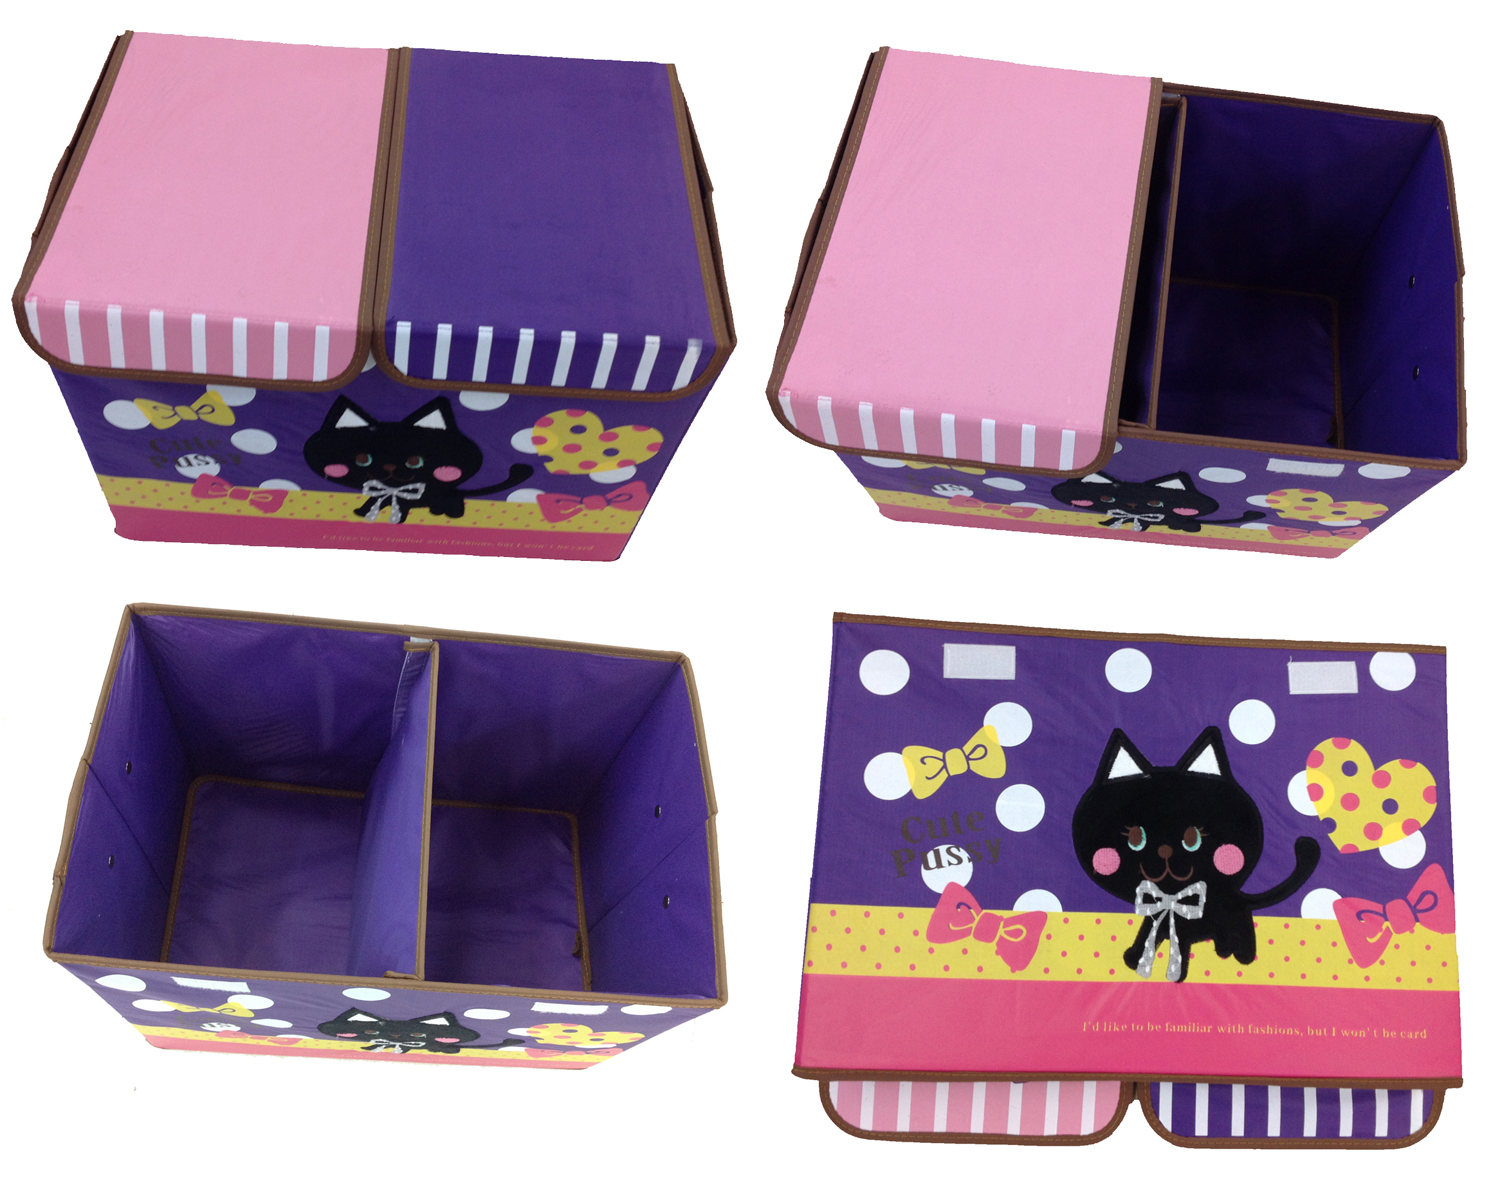 spielzeugbox katze aufbewahrungsbox spielzeugkiste aufbewahrung kinderm bel ebay. Black Bedroom Furniture Sets. Home Design Ideas